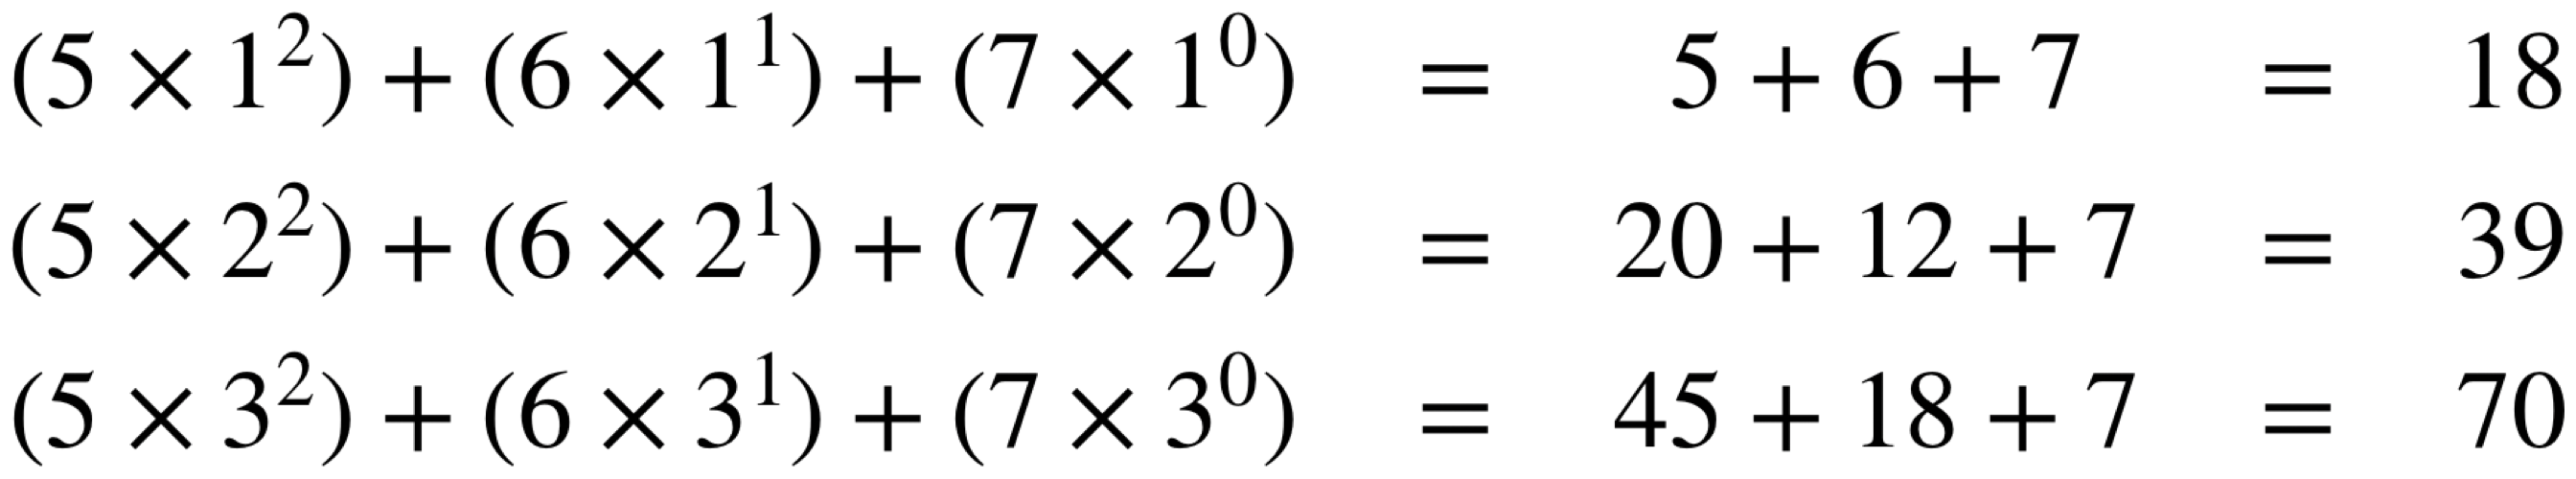 Equation that shows the polynomial evaluation for the coefficients five, six, and seven, and the variables one, two, and three.